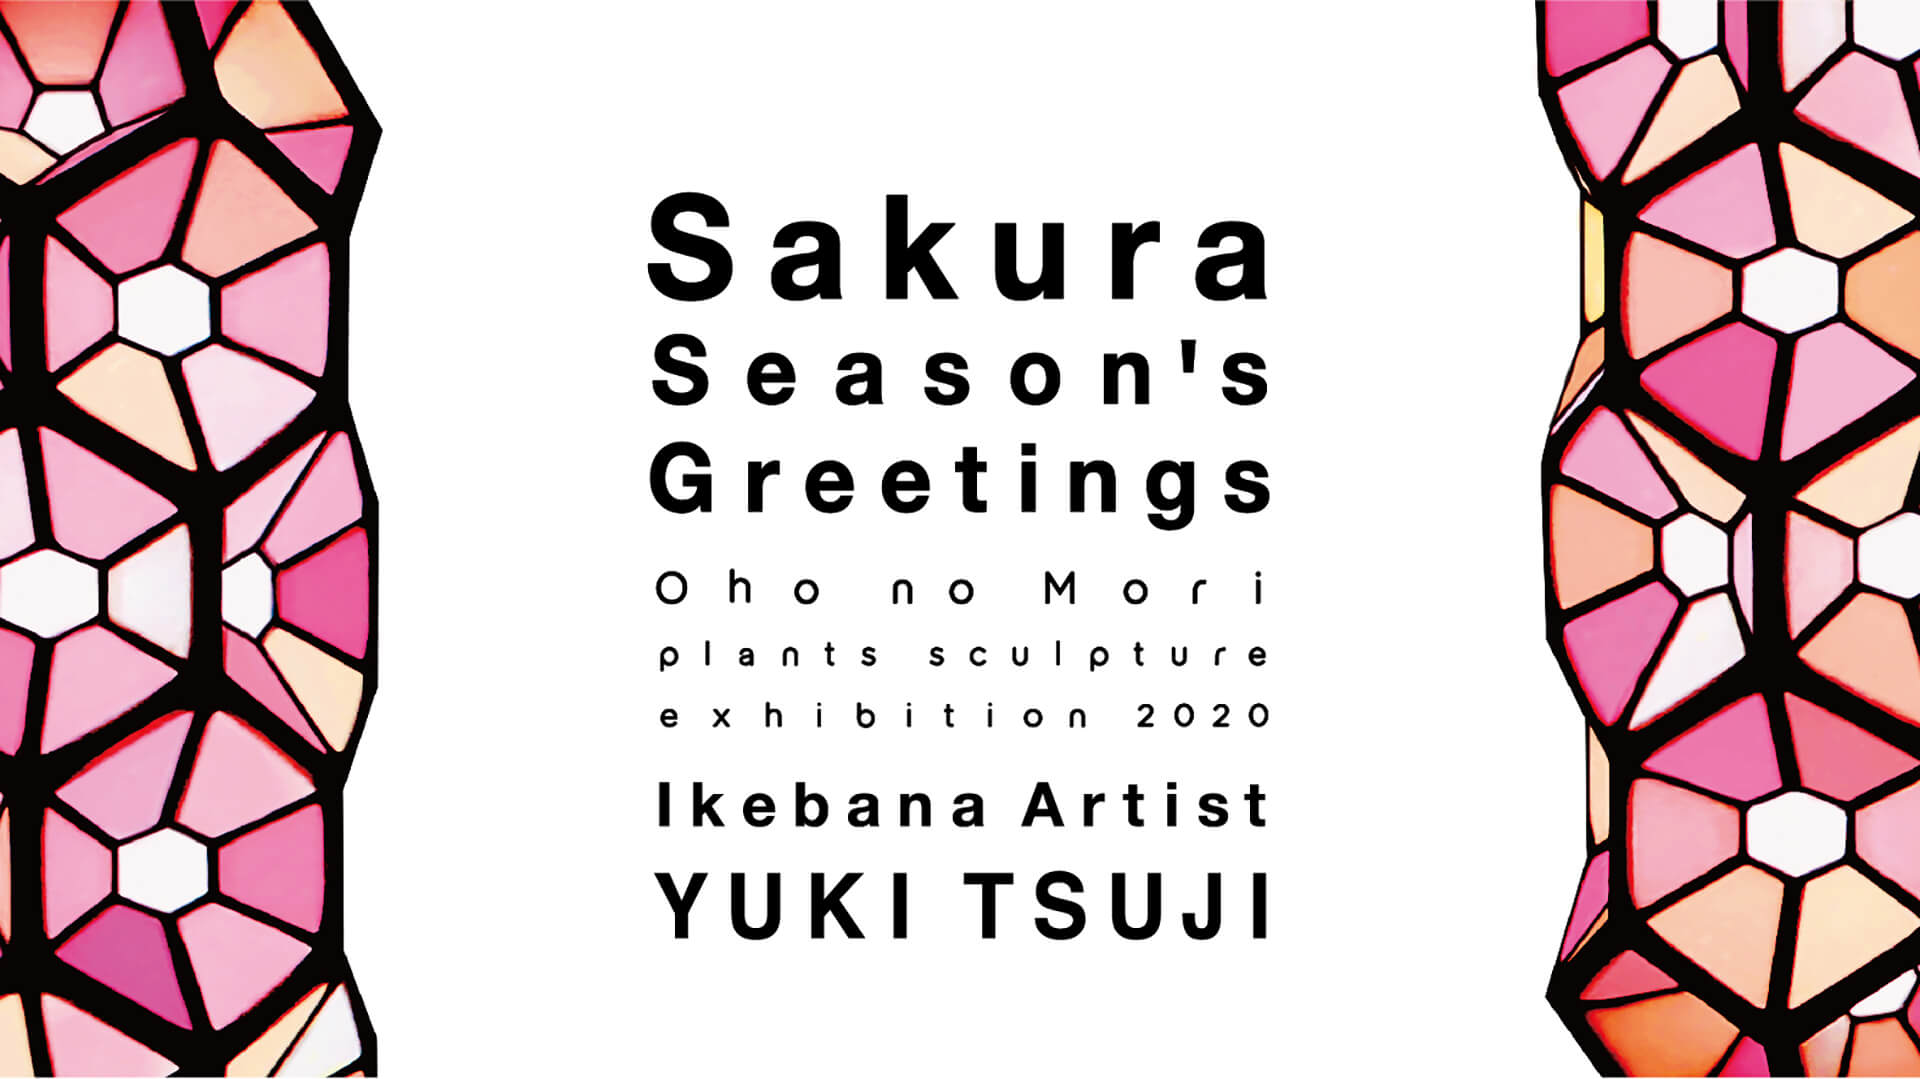 Sakura Season's Greetings